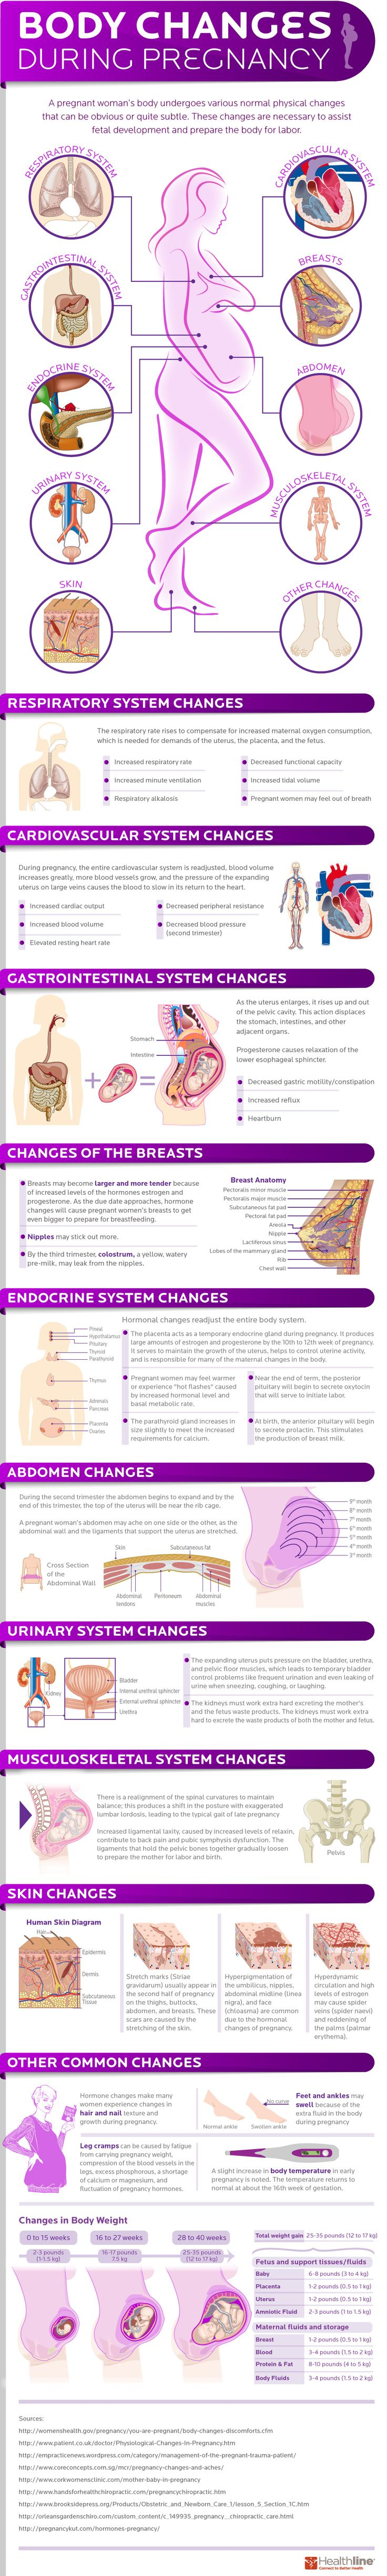 This infographic covers all of the changes that take place throughout the body during pregnancy.